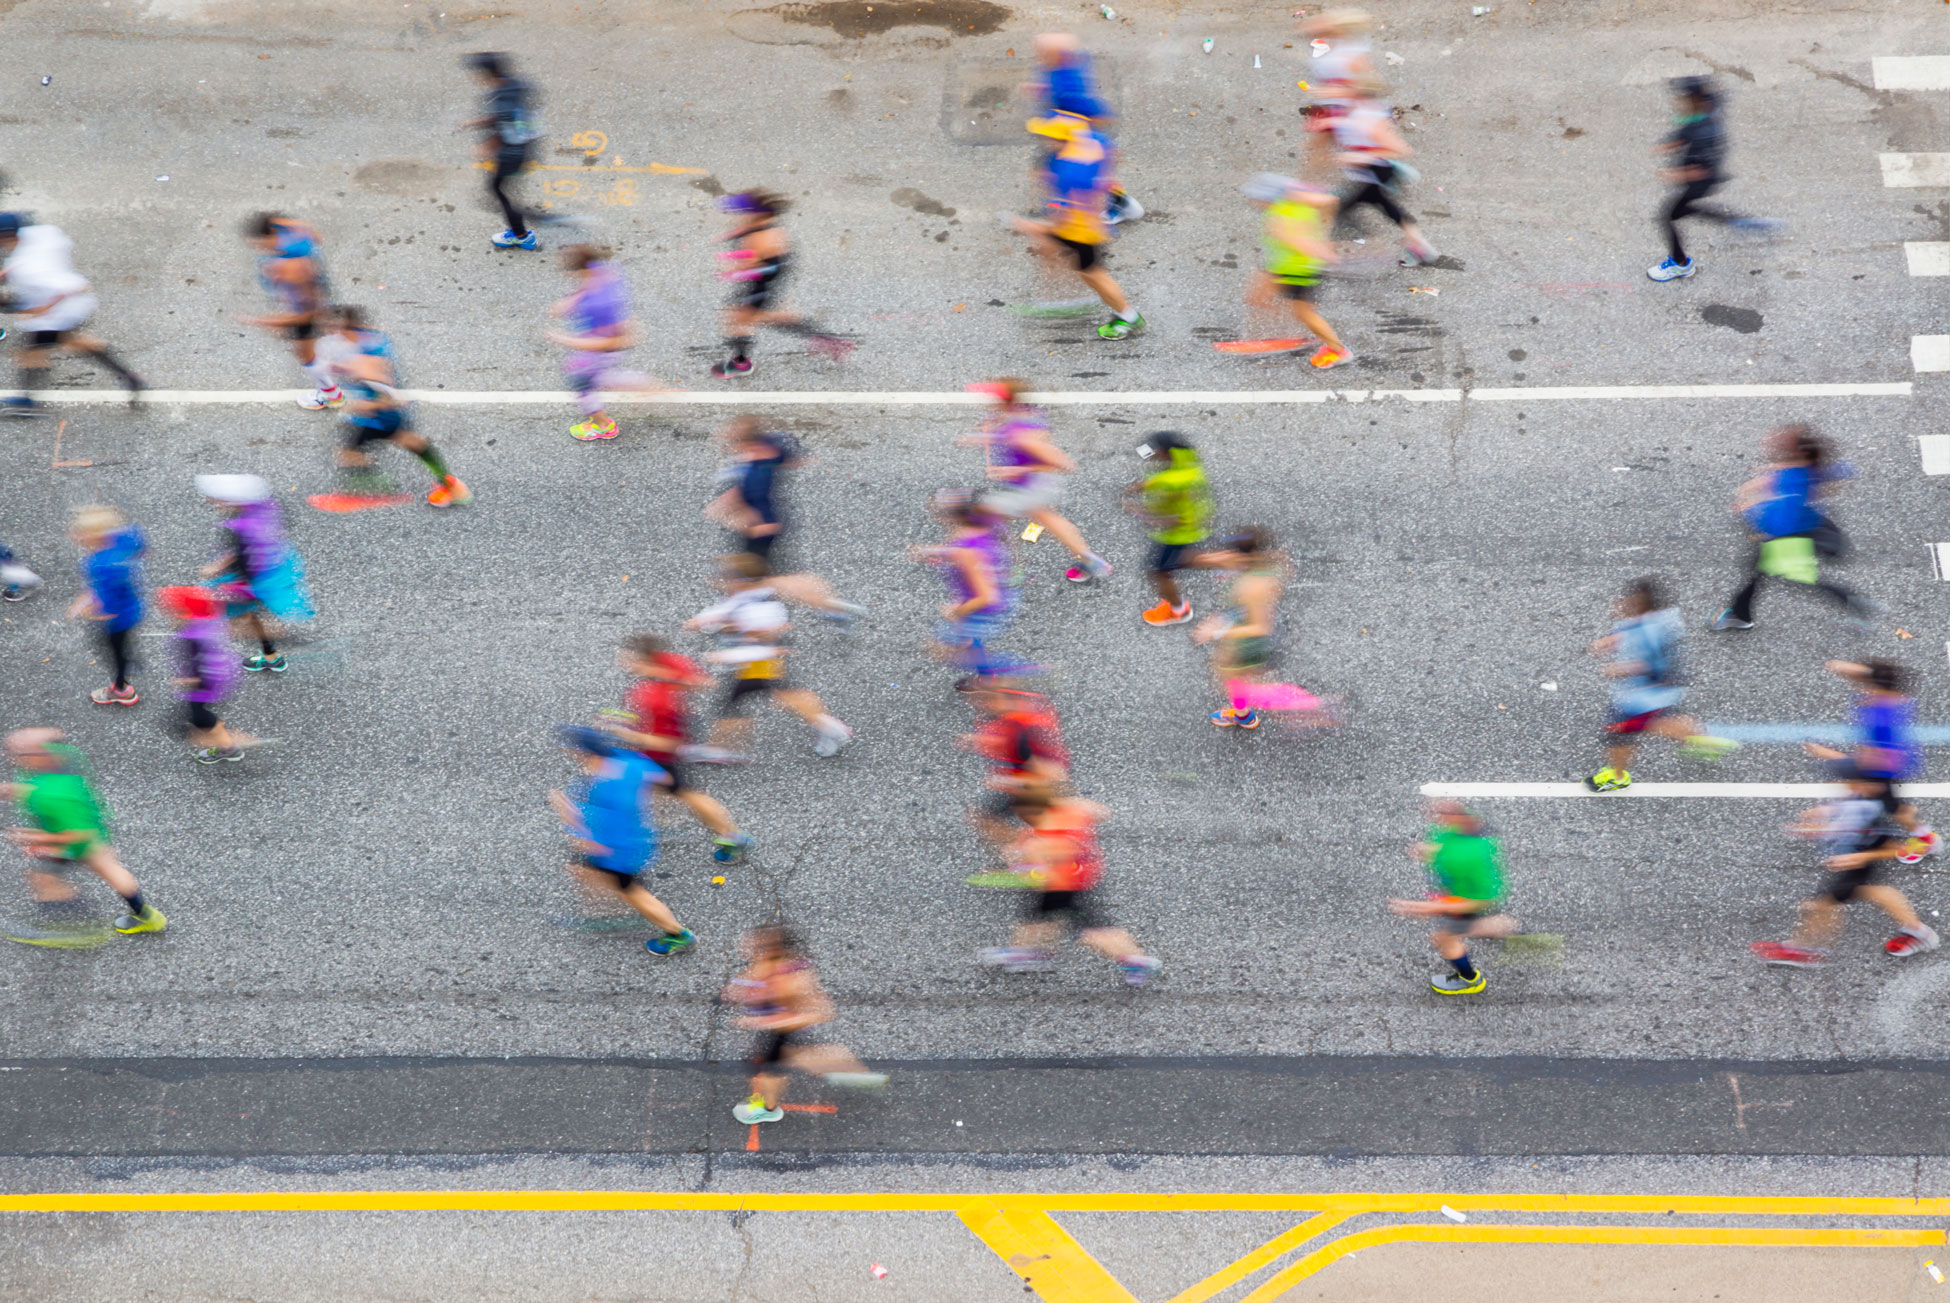 Runners in a 10K race seen from above